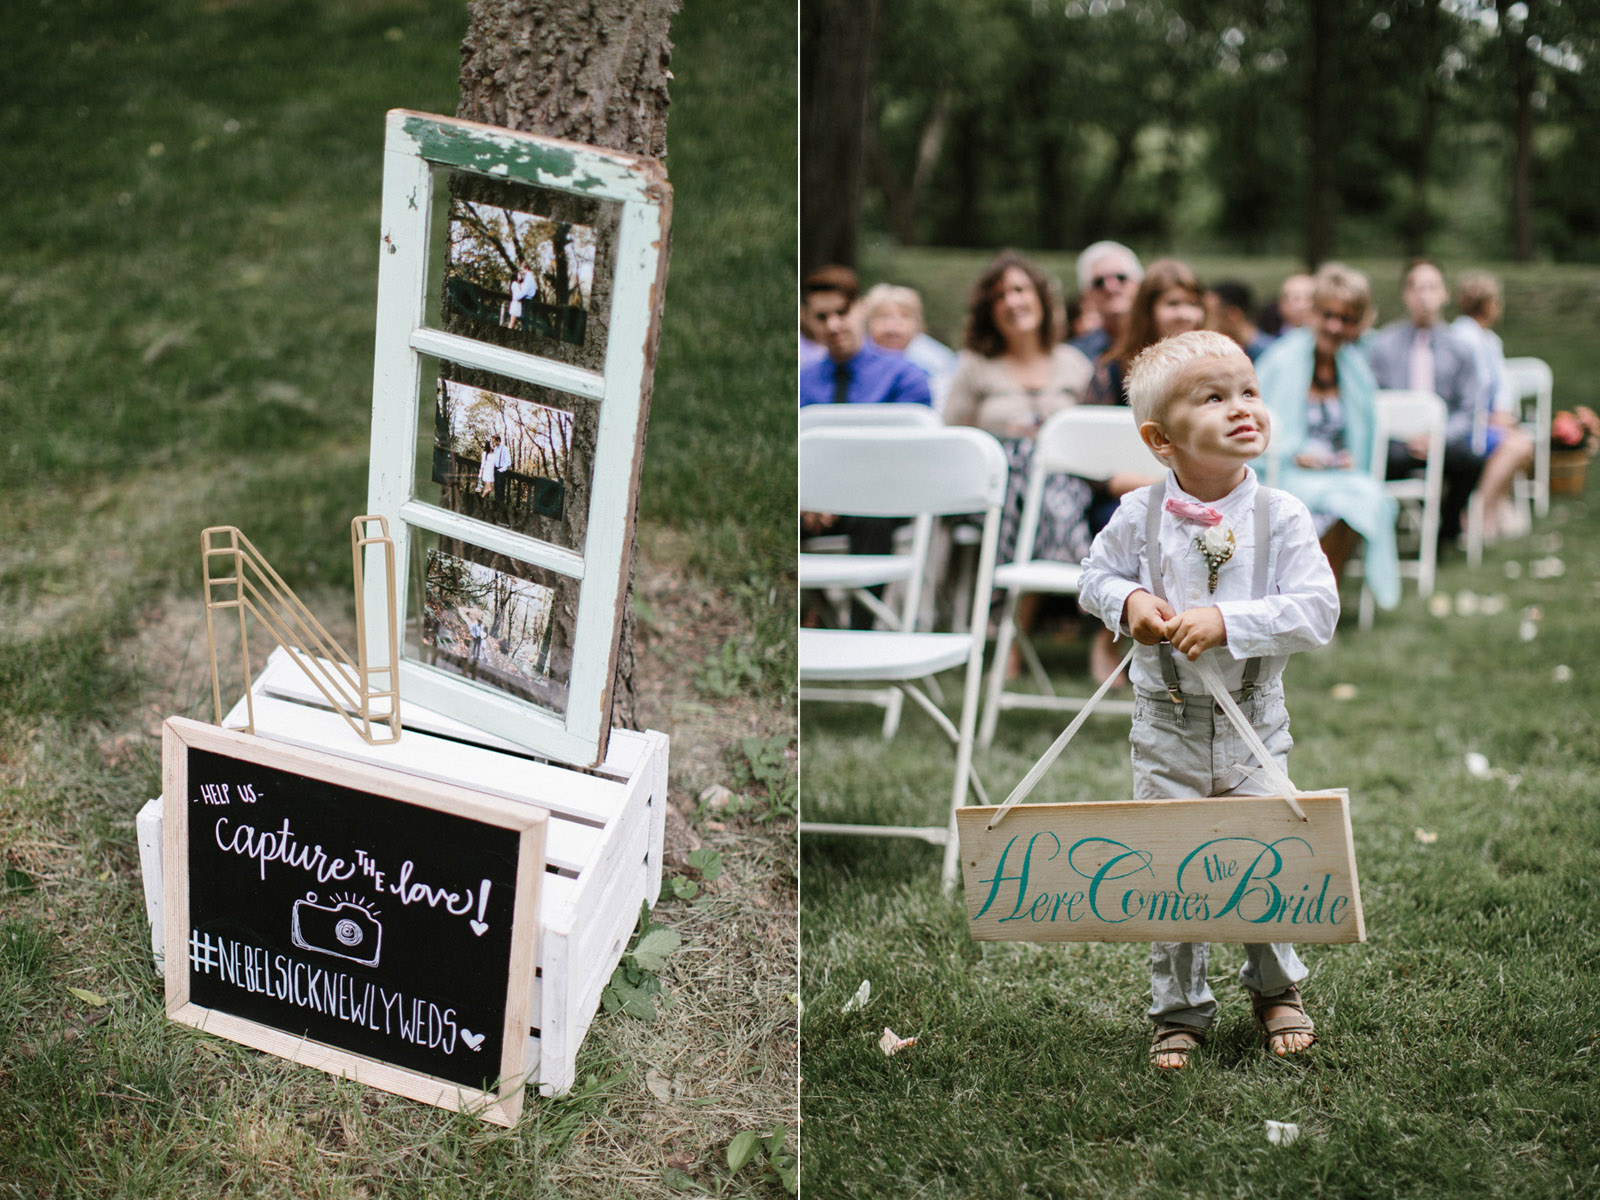 Outdoor_Wedding_SiouxFalls_MaryJoWegnerArboretum_Photographer_Calli&Jon_074.jpg